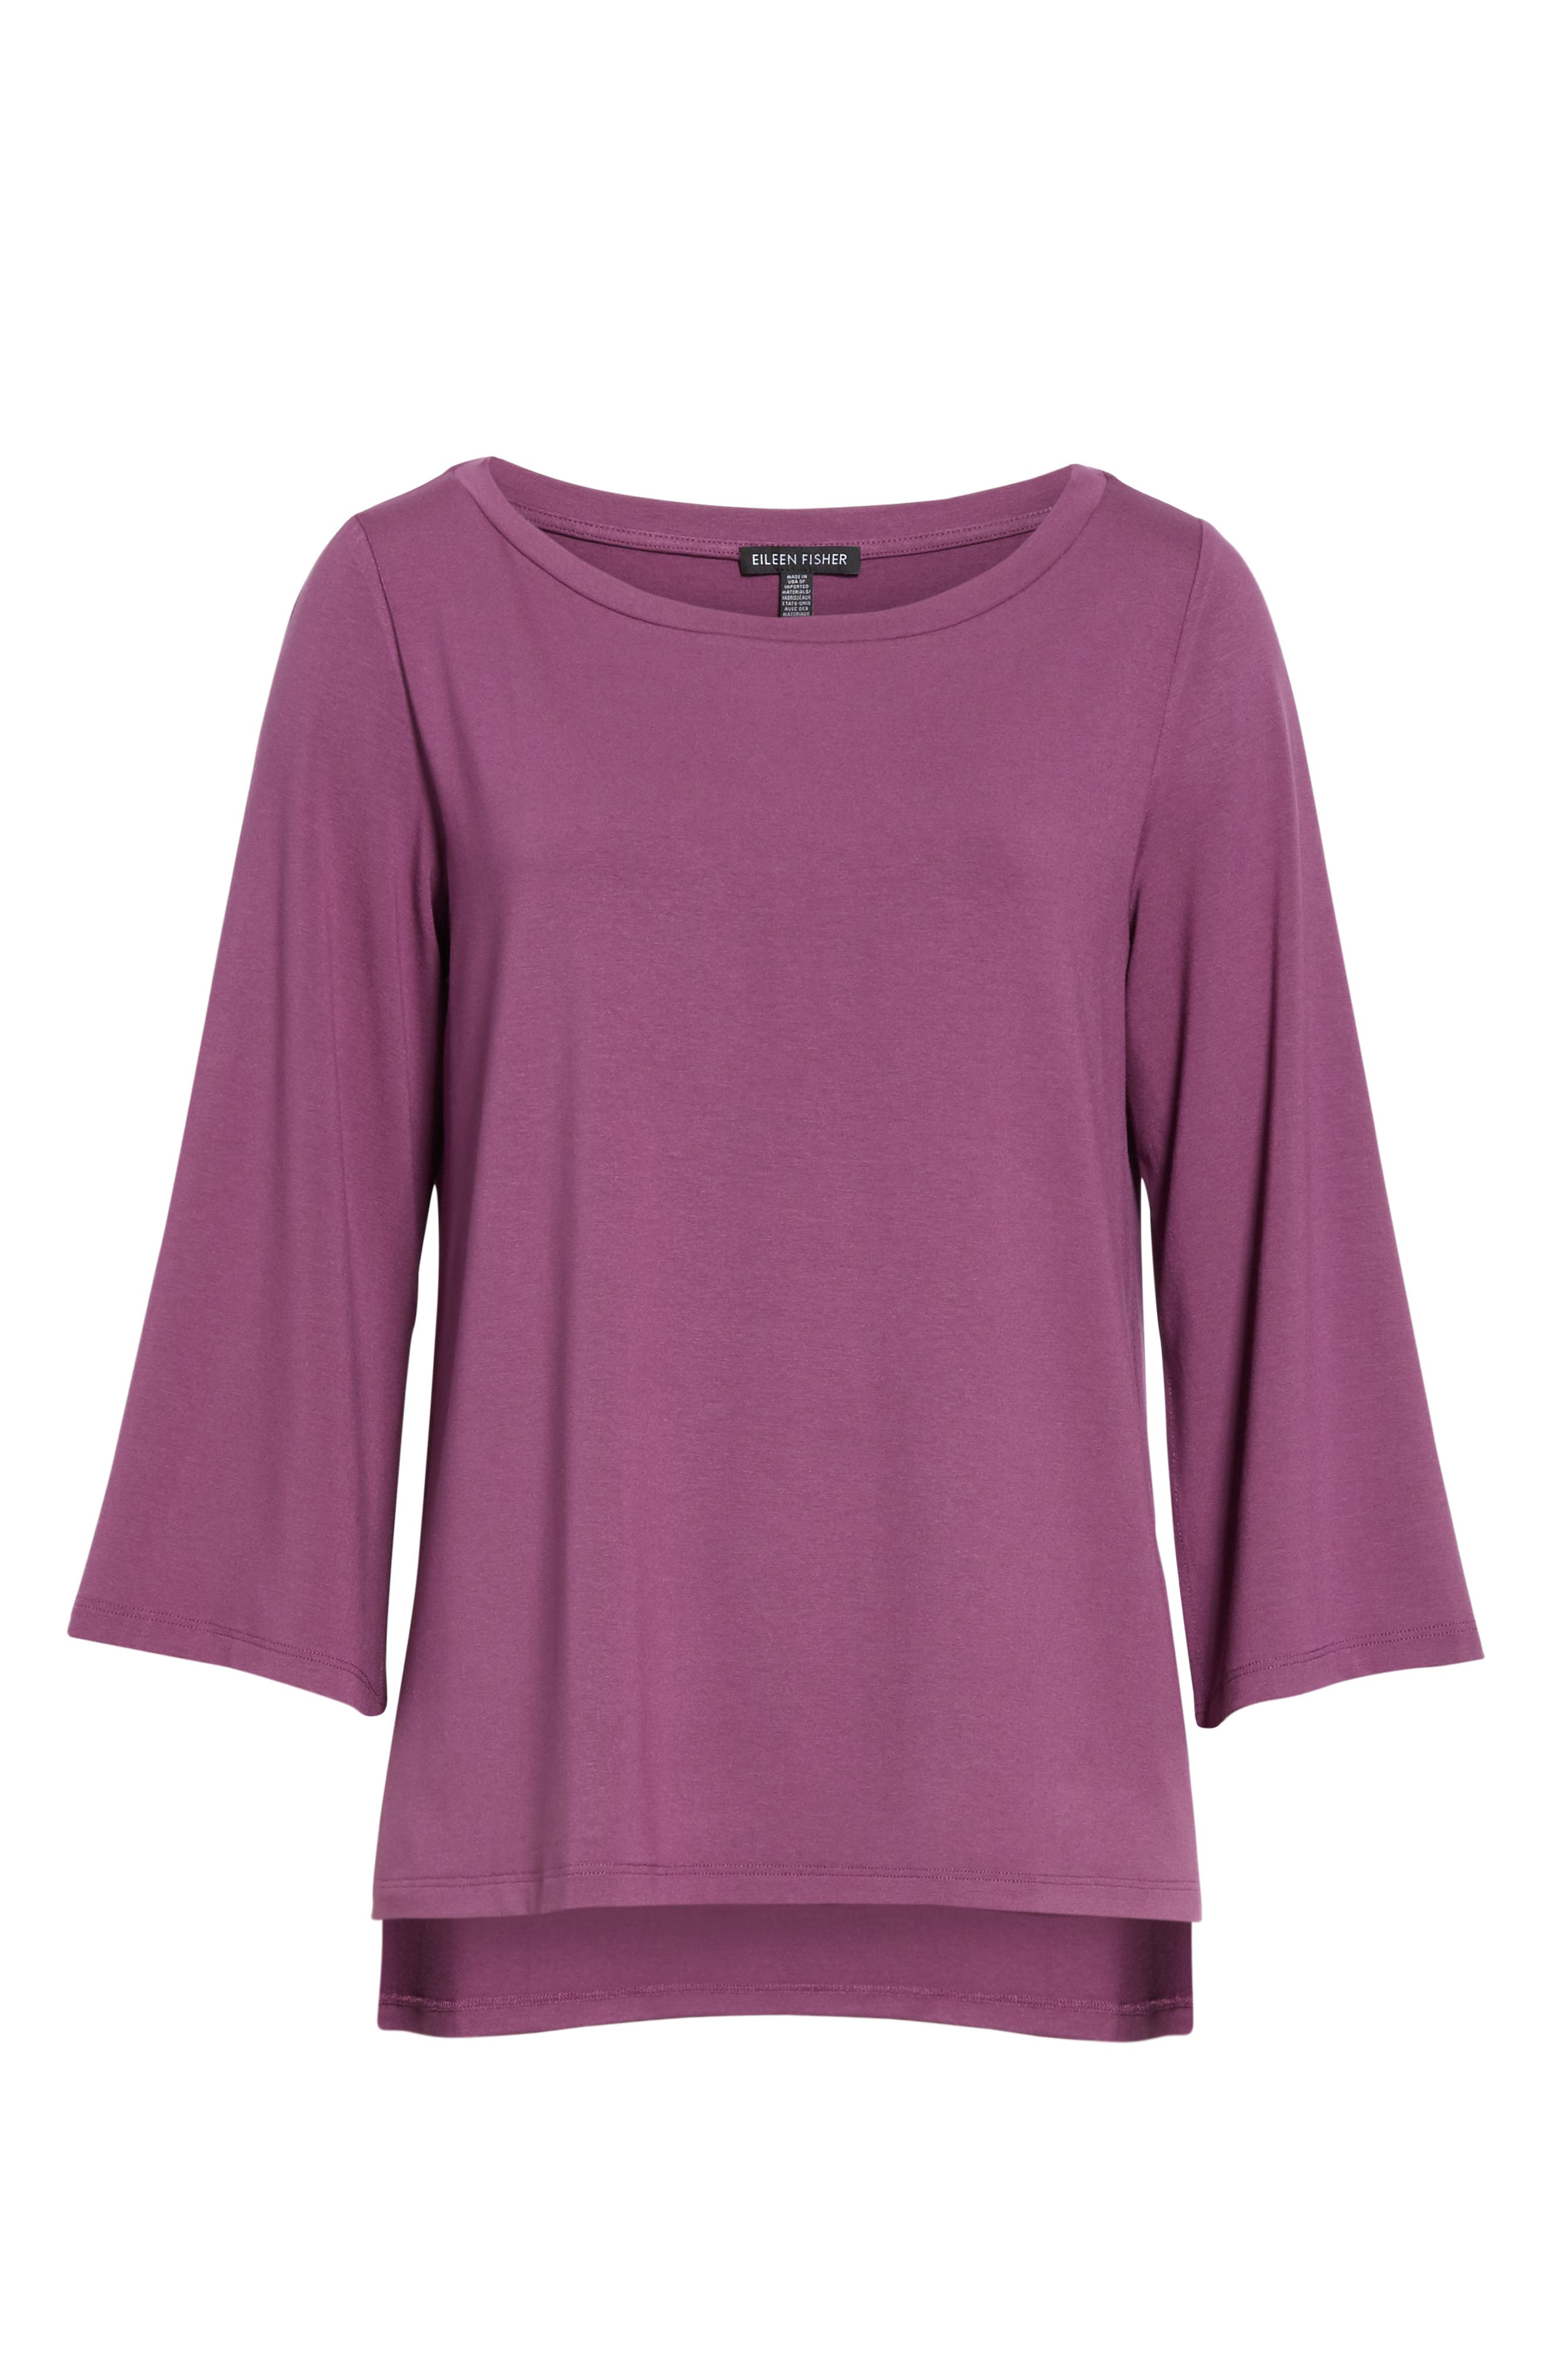 Flare Sleeve Top,                             Alternate thumbnail 6, color,                             CURRANT